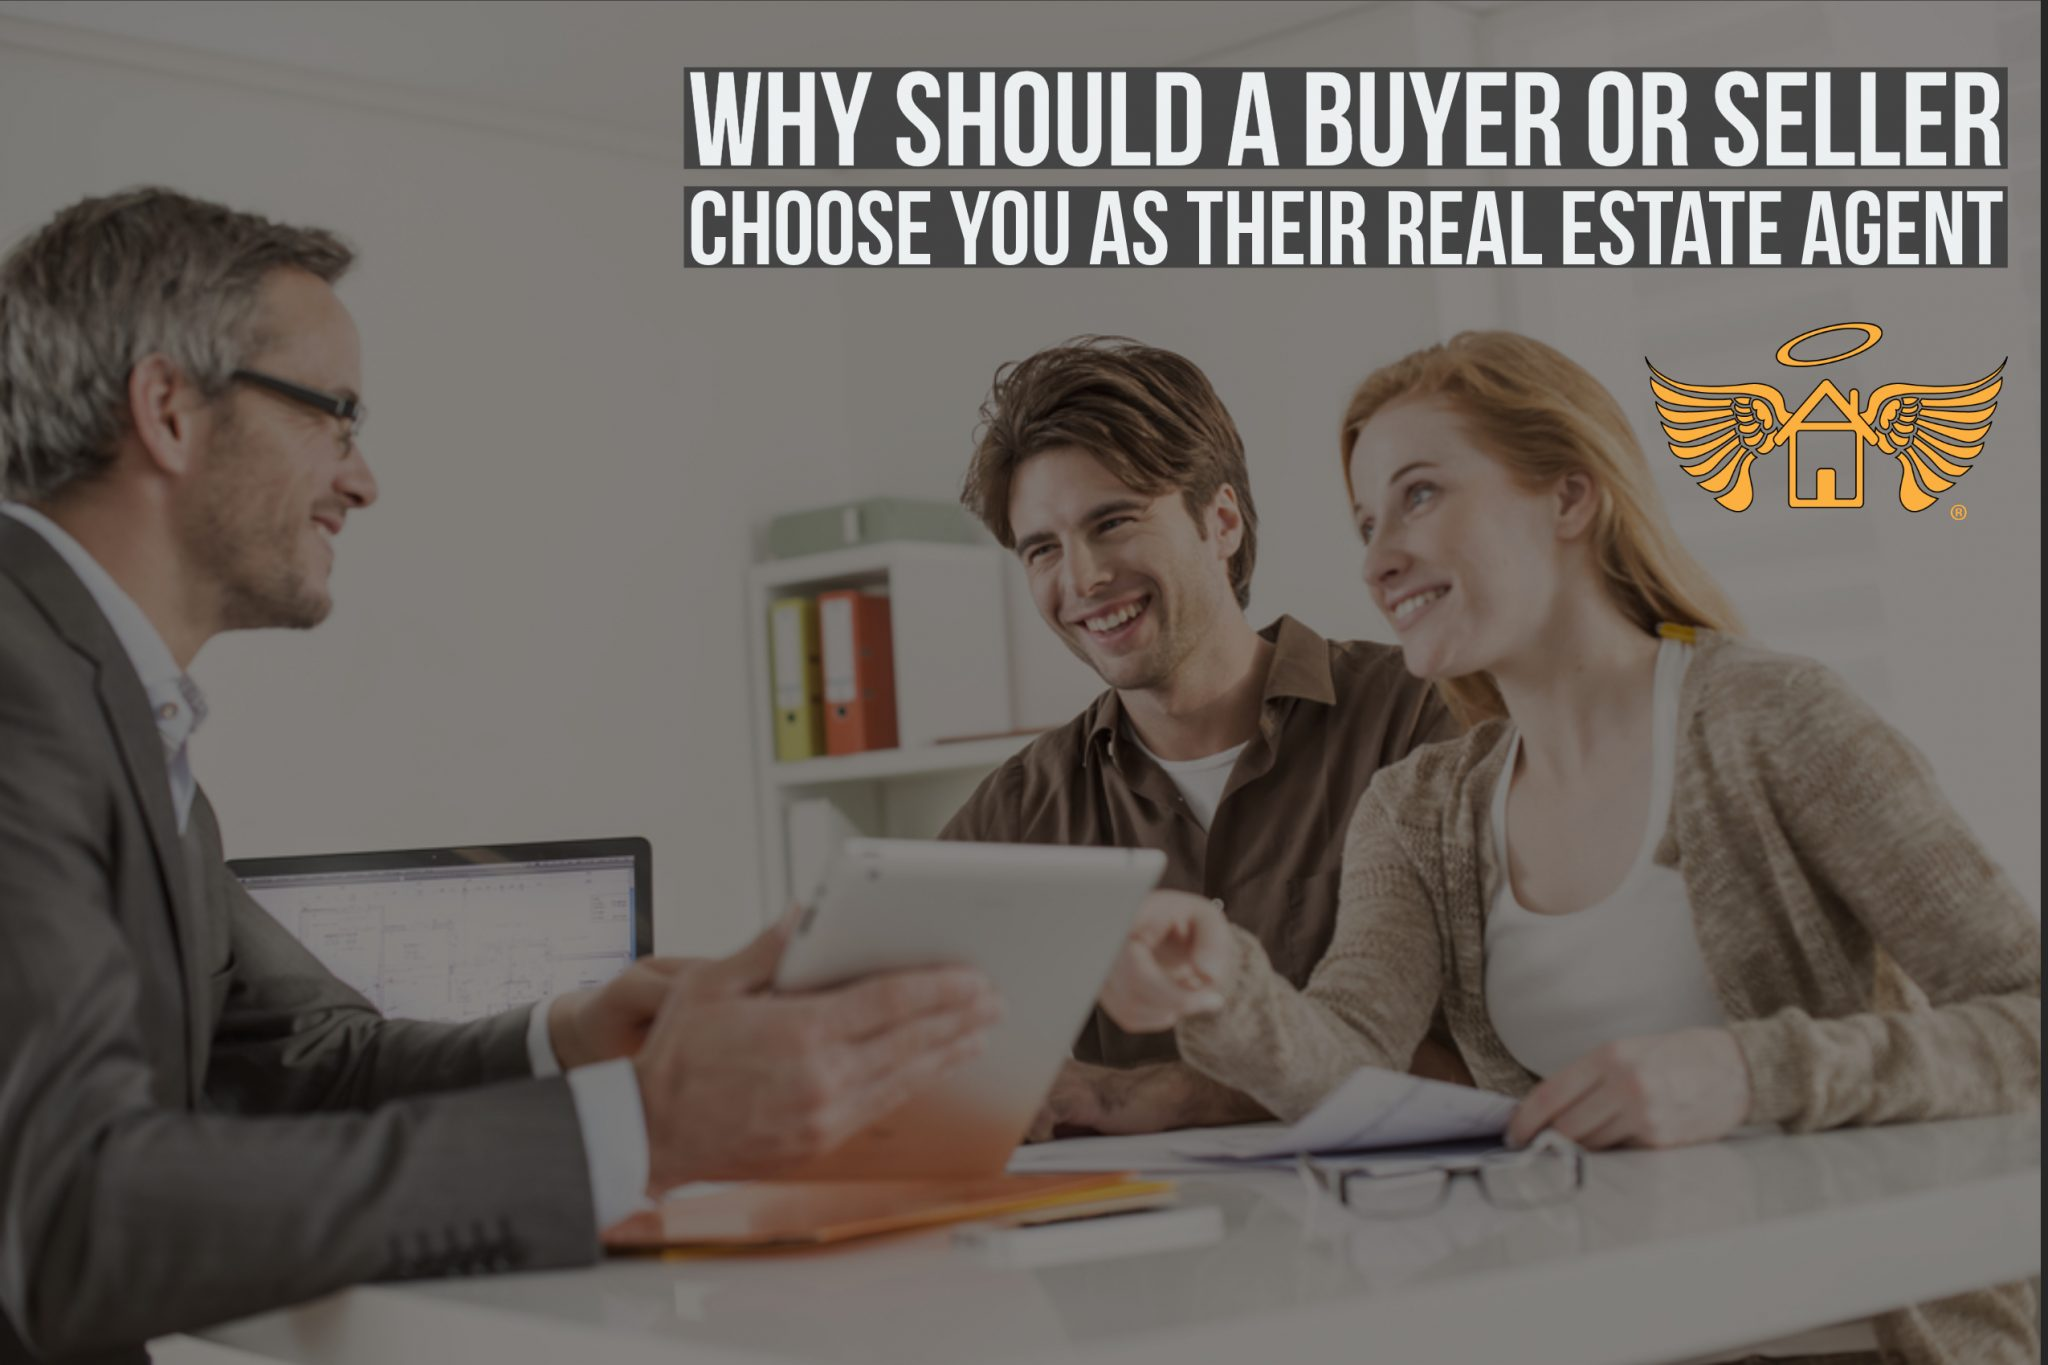 home sellers guide for choosing real estate agents